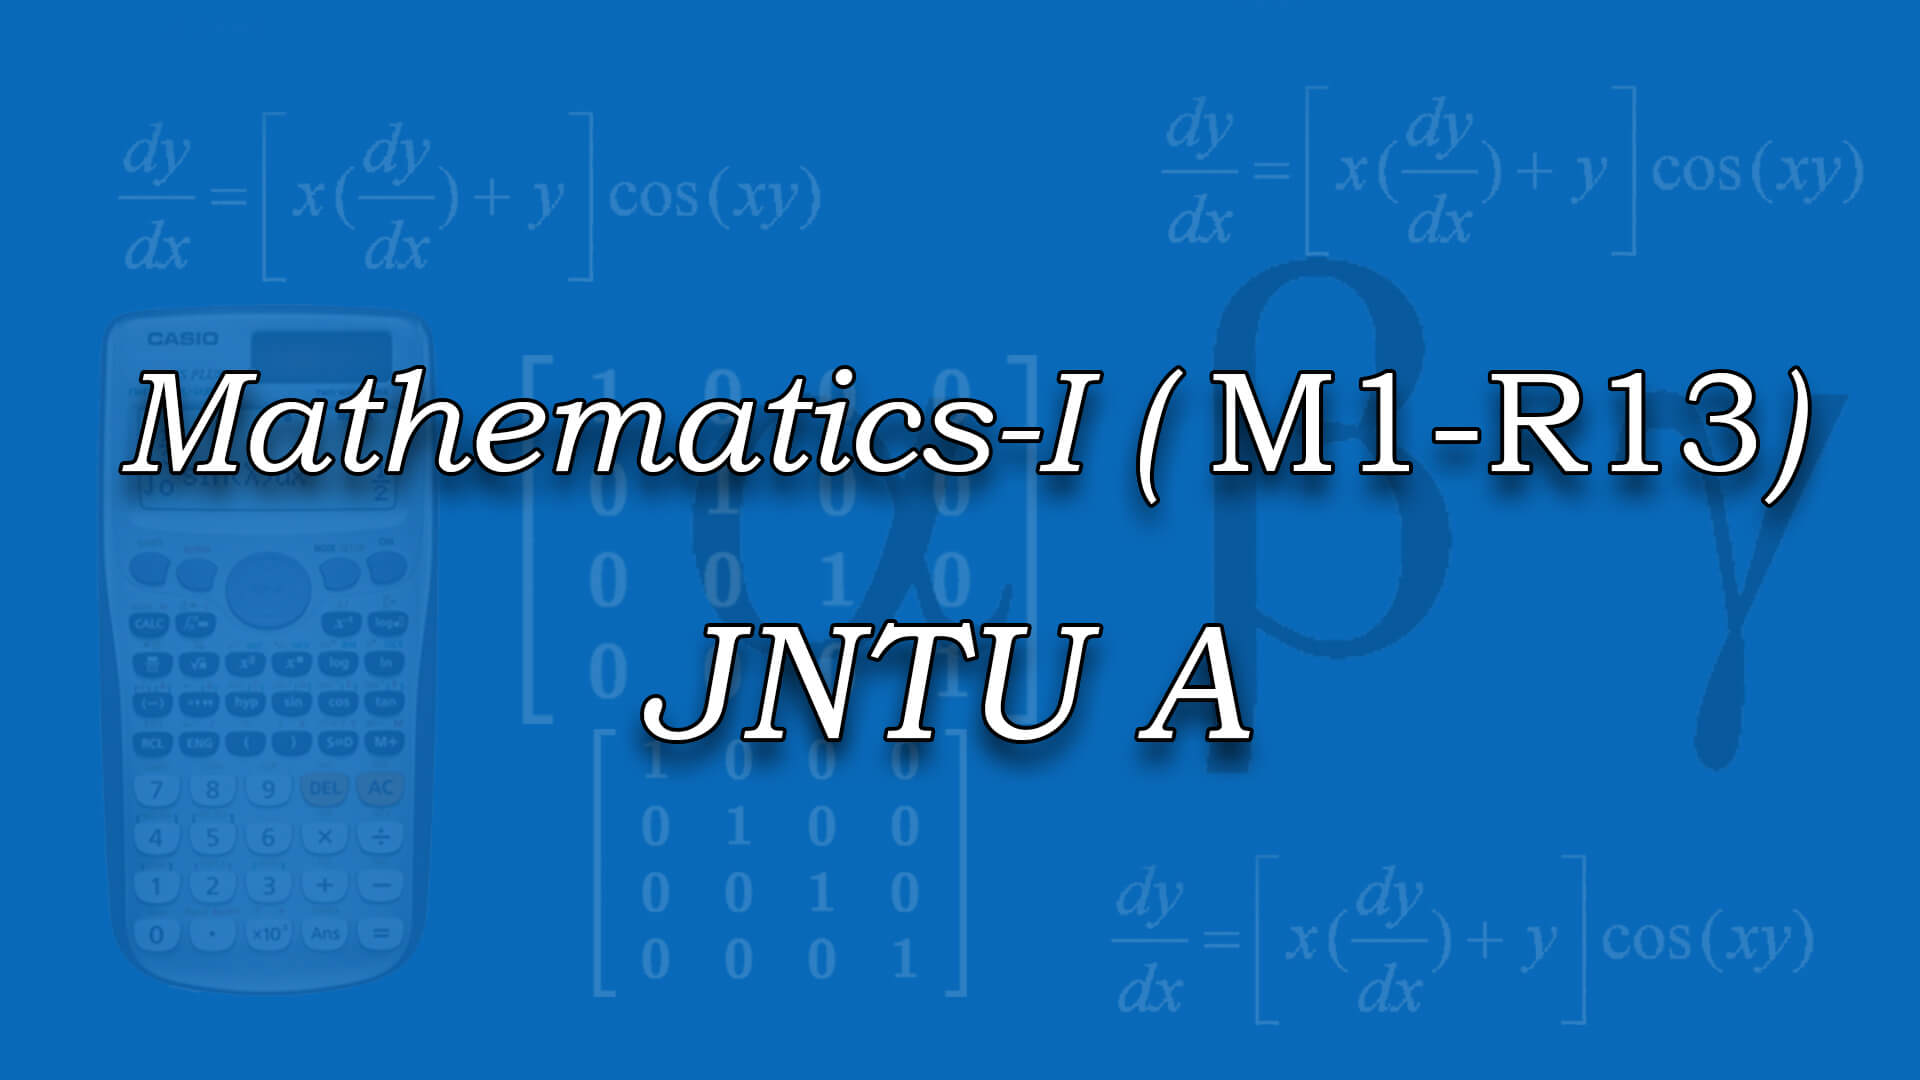 Mathematics-I for JNTUA (M1-R13) online videos